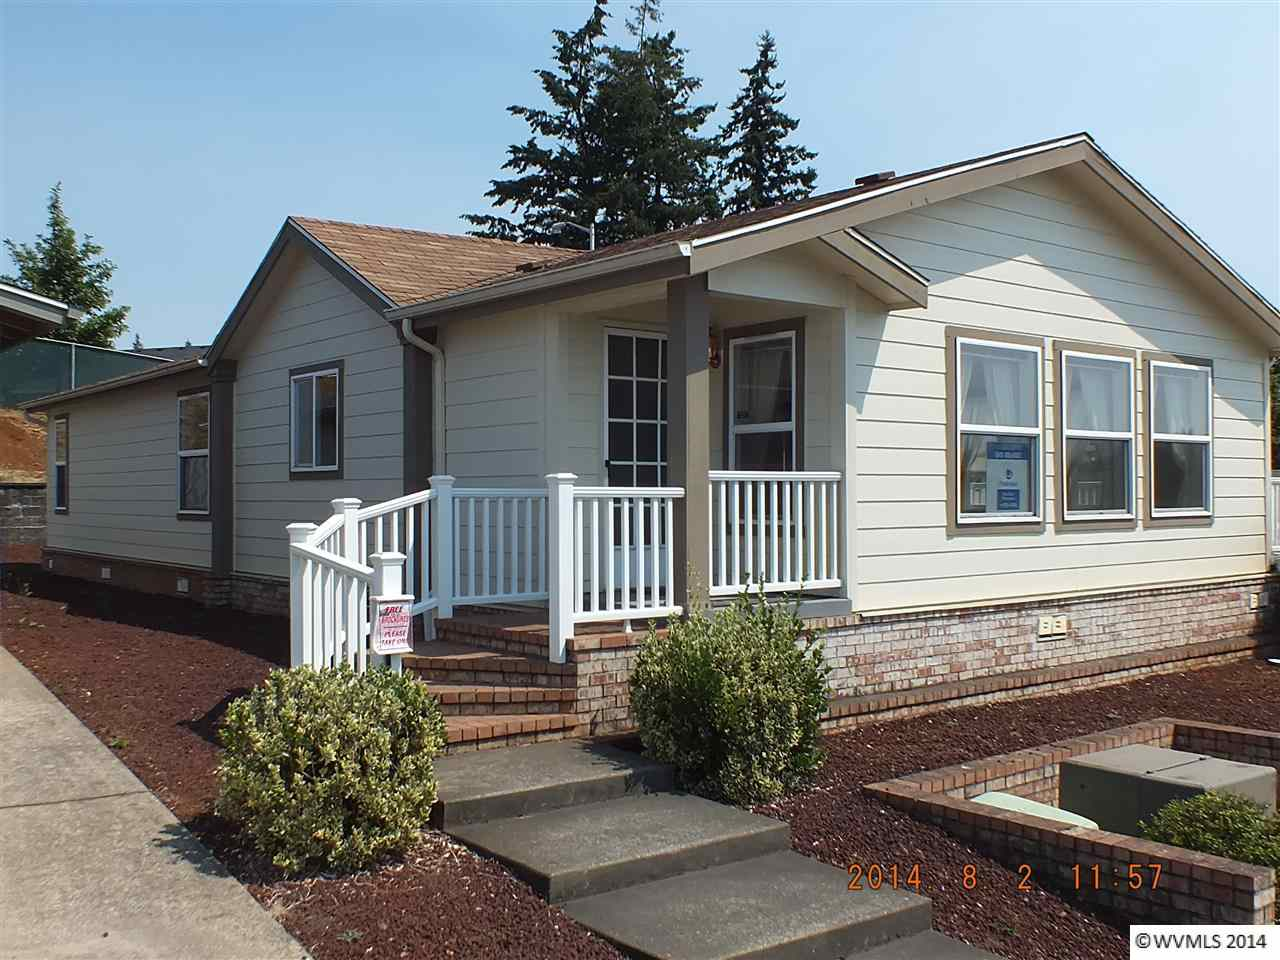 Mobile Homes For Sale Medford Oregon 13 photos gallery of the